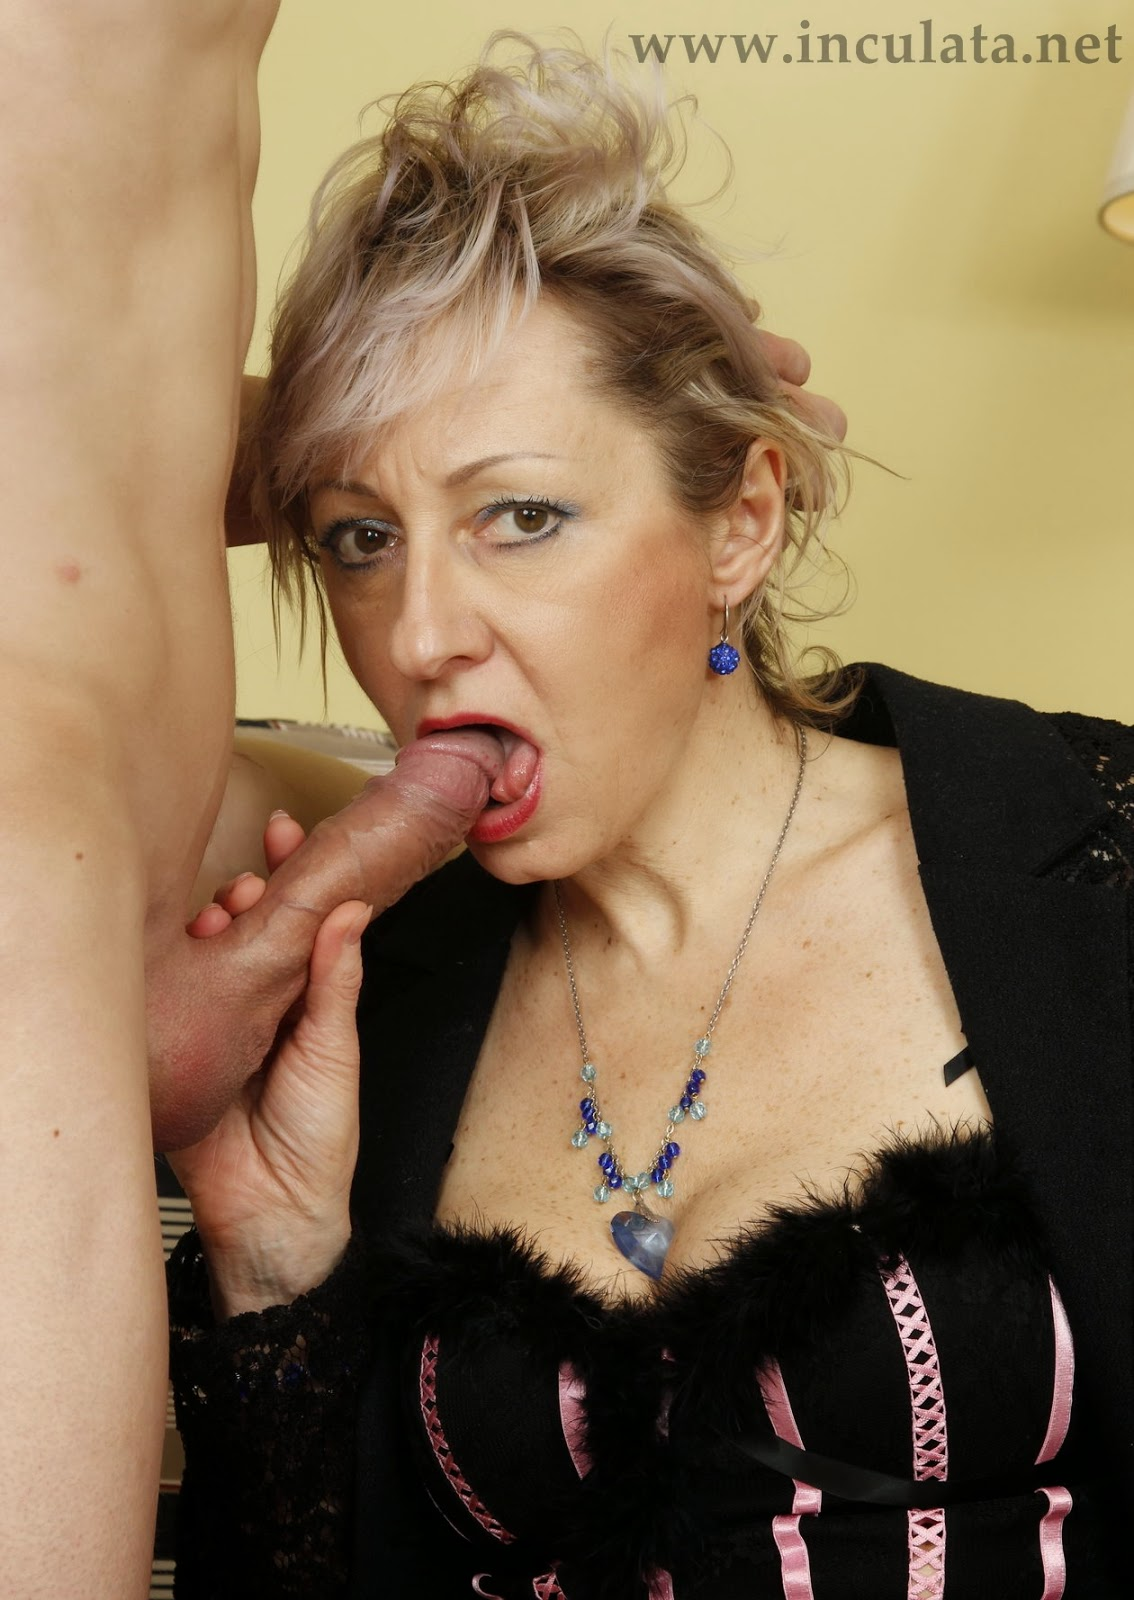 sesso video gratis milf in calore